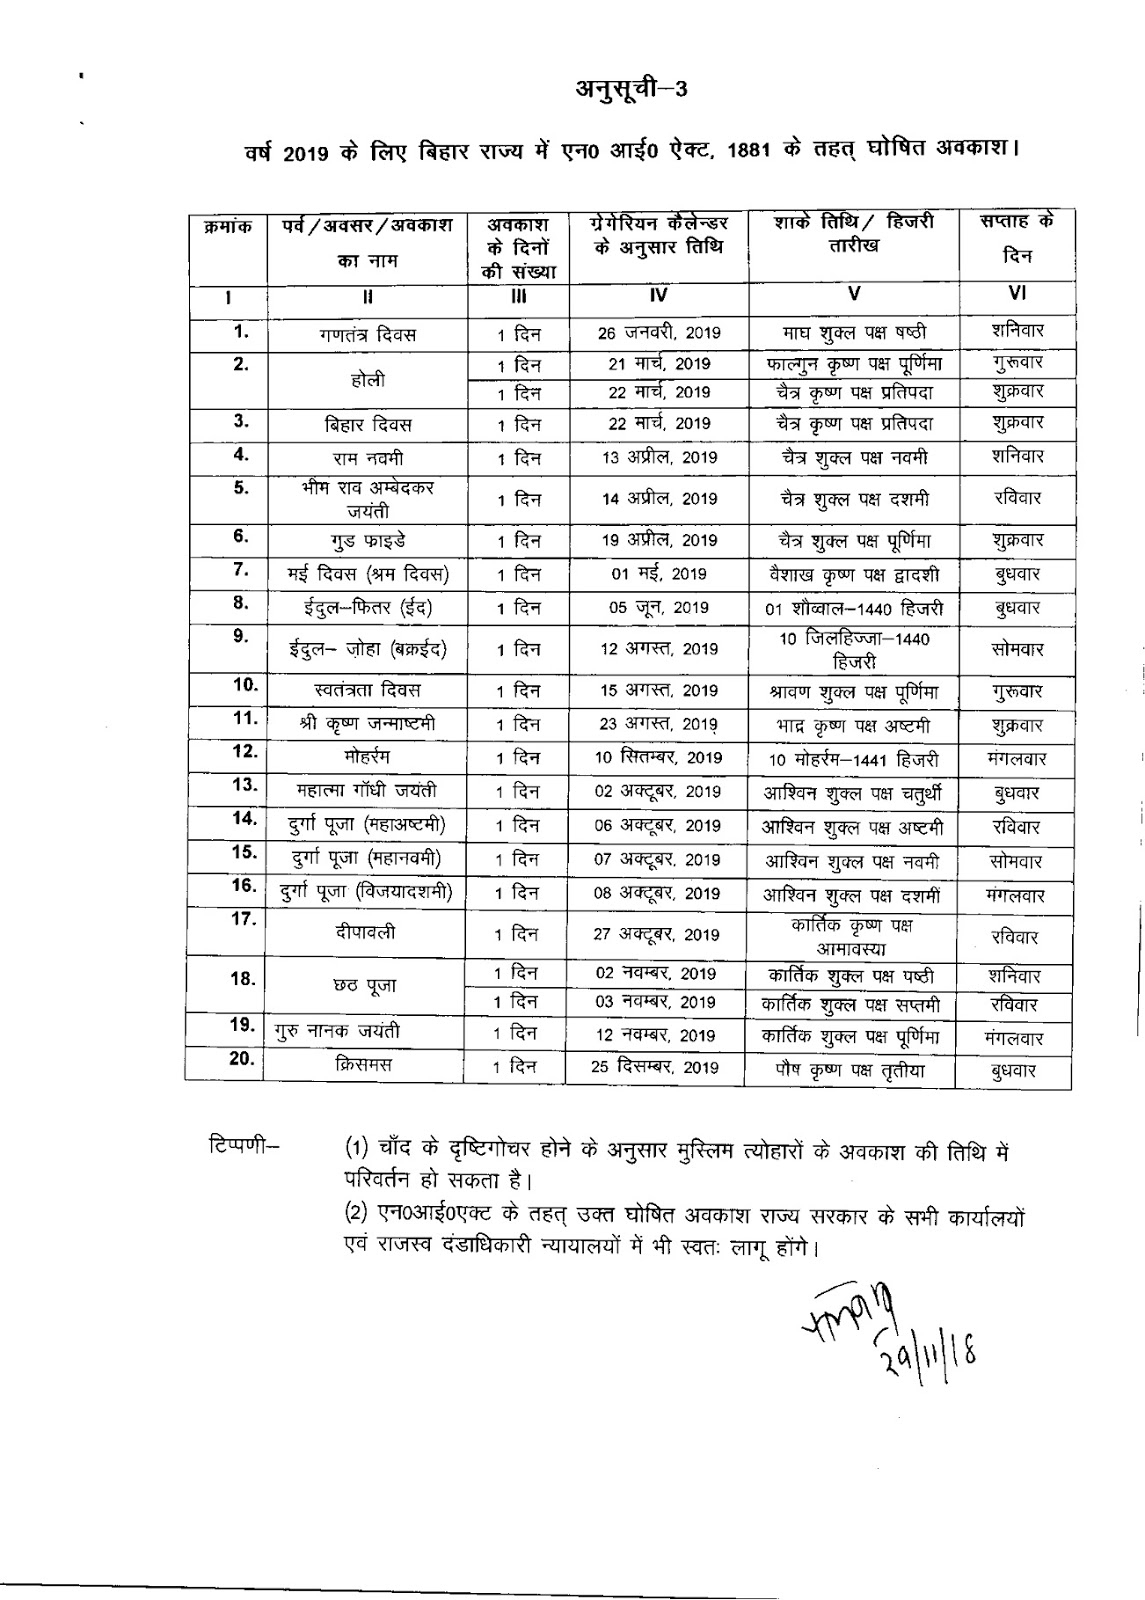 Bihar Government Calendar 2019 #educratsweb intended for Bihar Calendar 2020